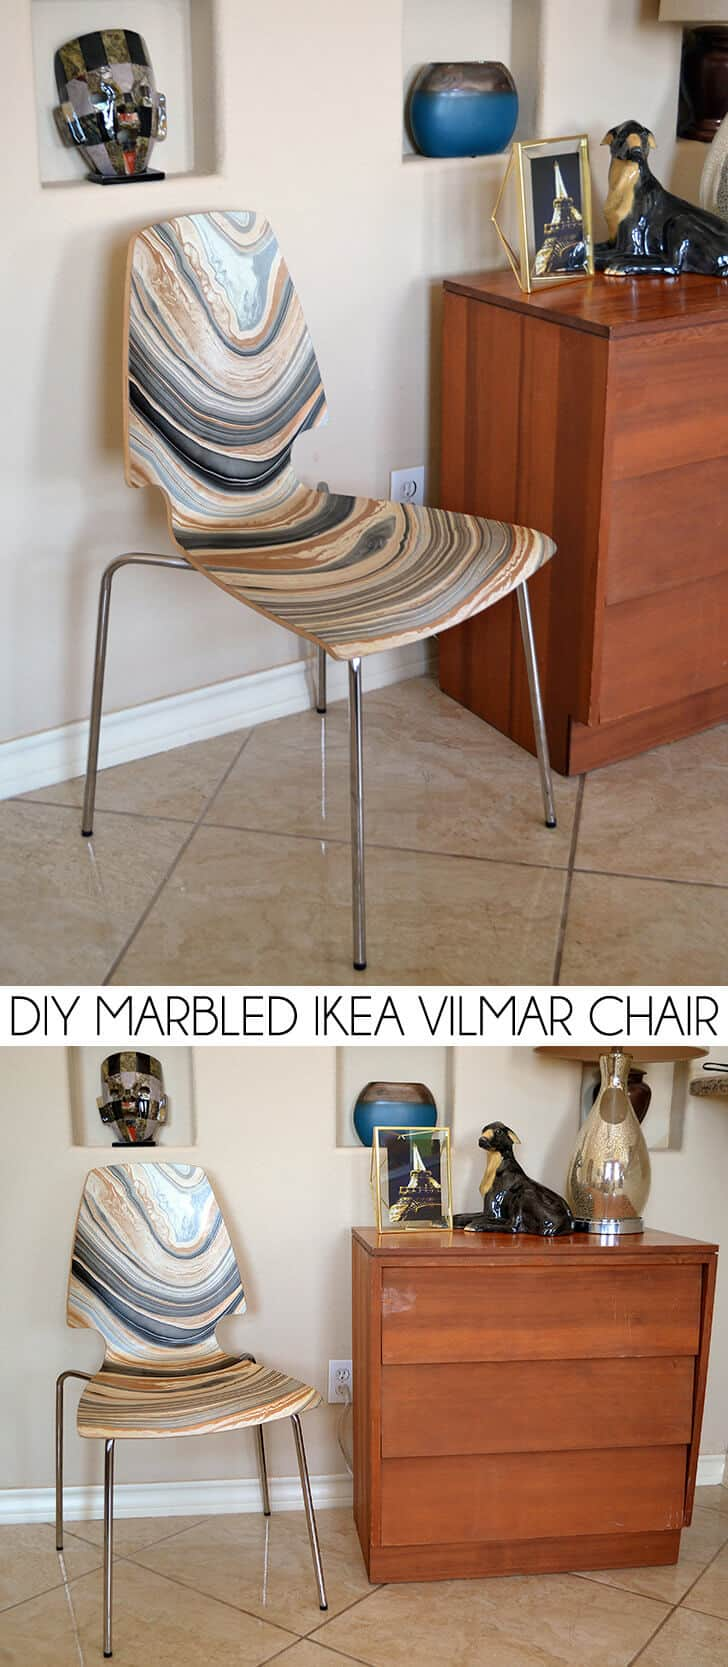 header-diy-marbled-ikea-chair-decoupage-dreamalittlebigger